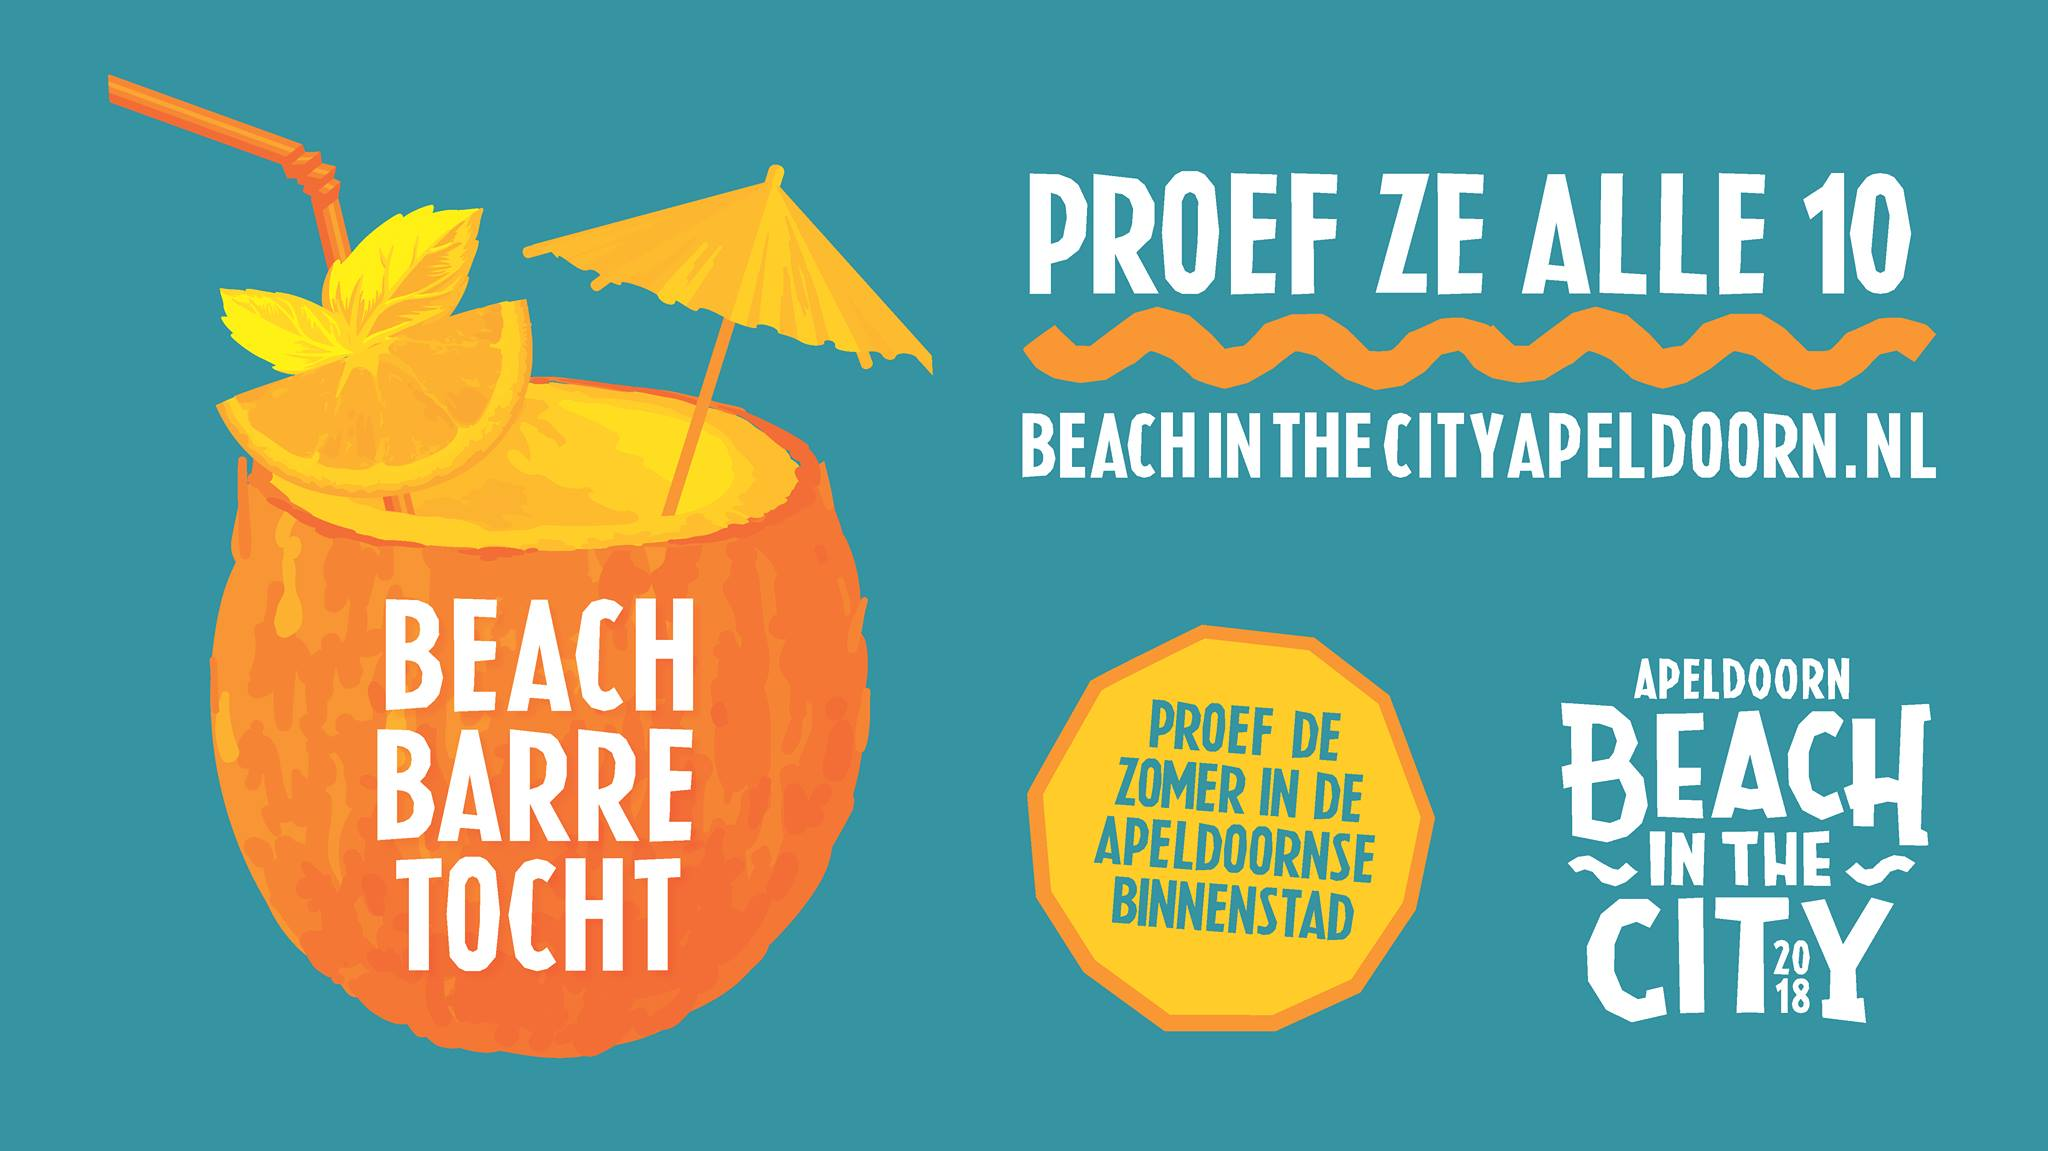 Beach Barretocht van do 19 t/m za 21 juli